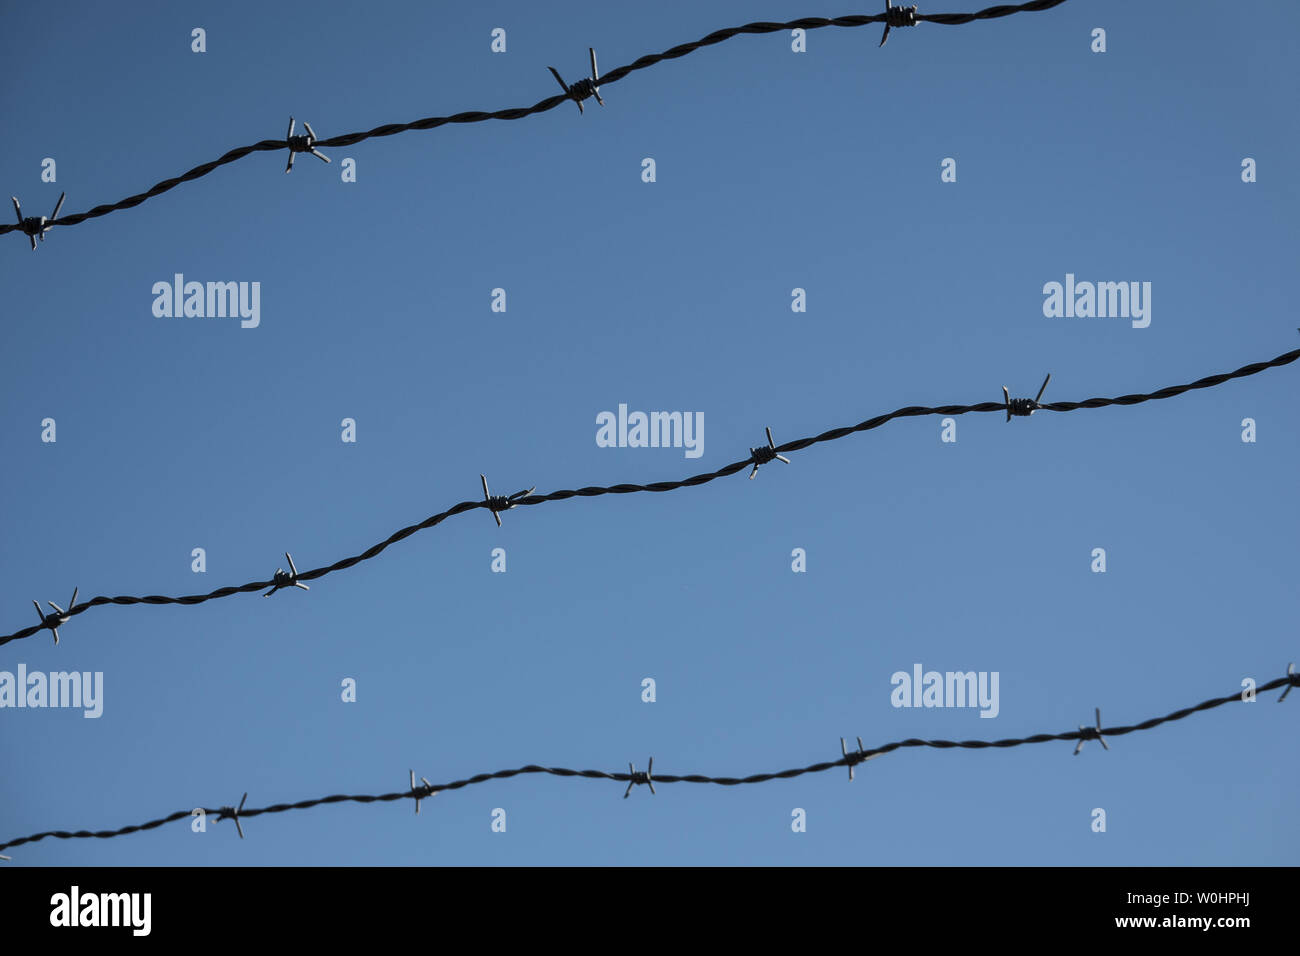 Three rows of rusty barbed wire in front of a blue sky, abstract Stock Photo